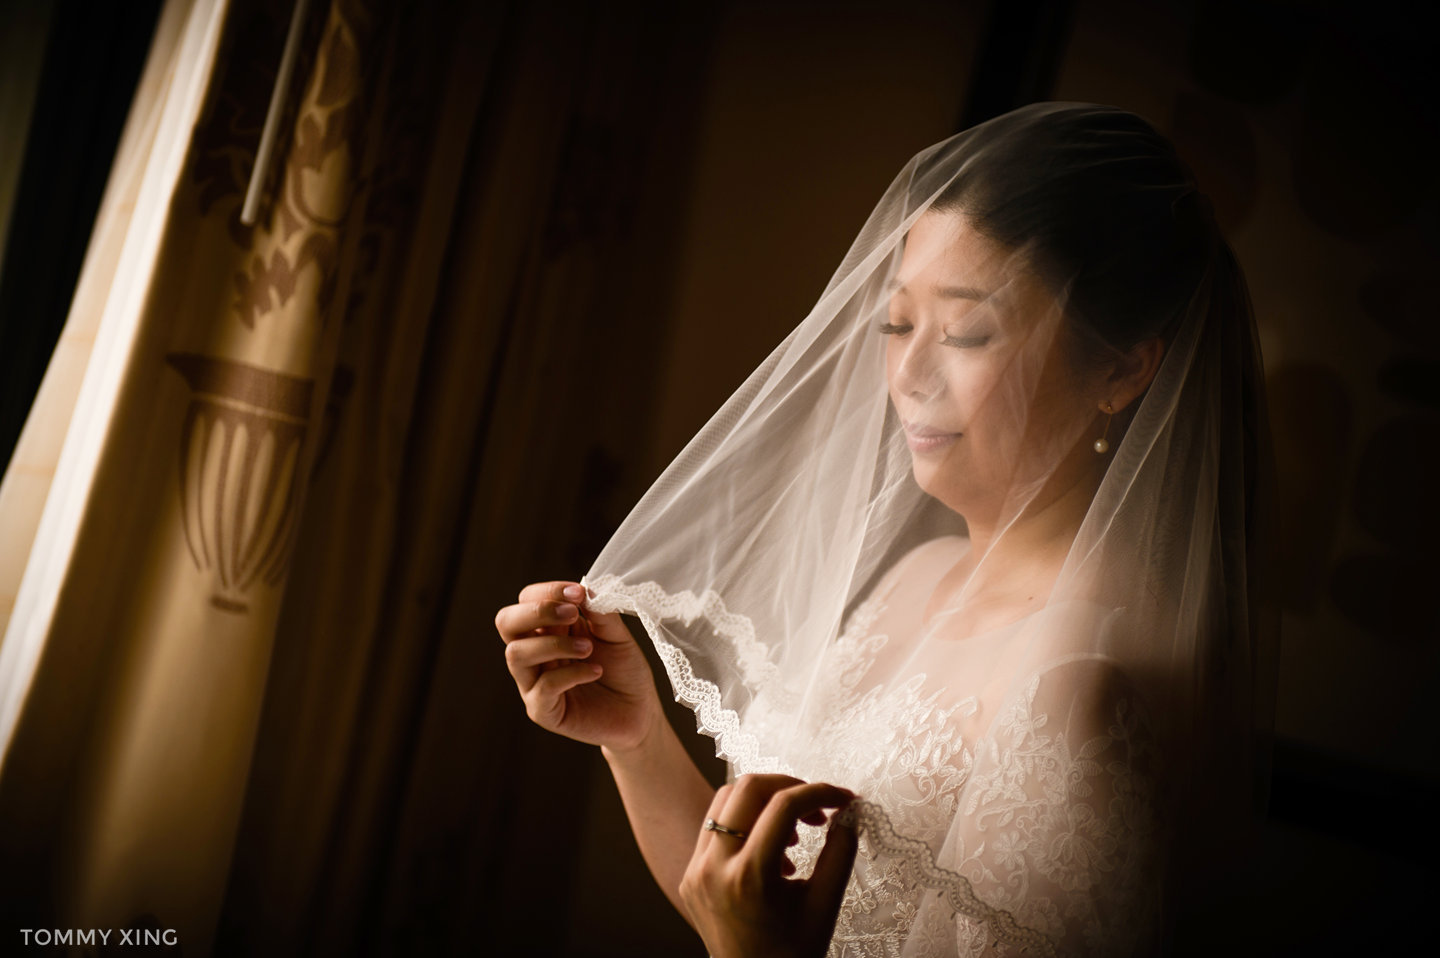 San Francisco Wedding Photography Valley Presbyterian Church WEDDING Tommy Xing Photography 洛杉矶旧金山婚礼婚纱照摄影师032.jpg